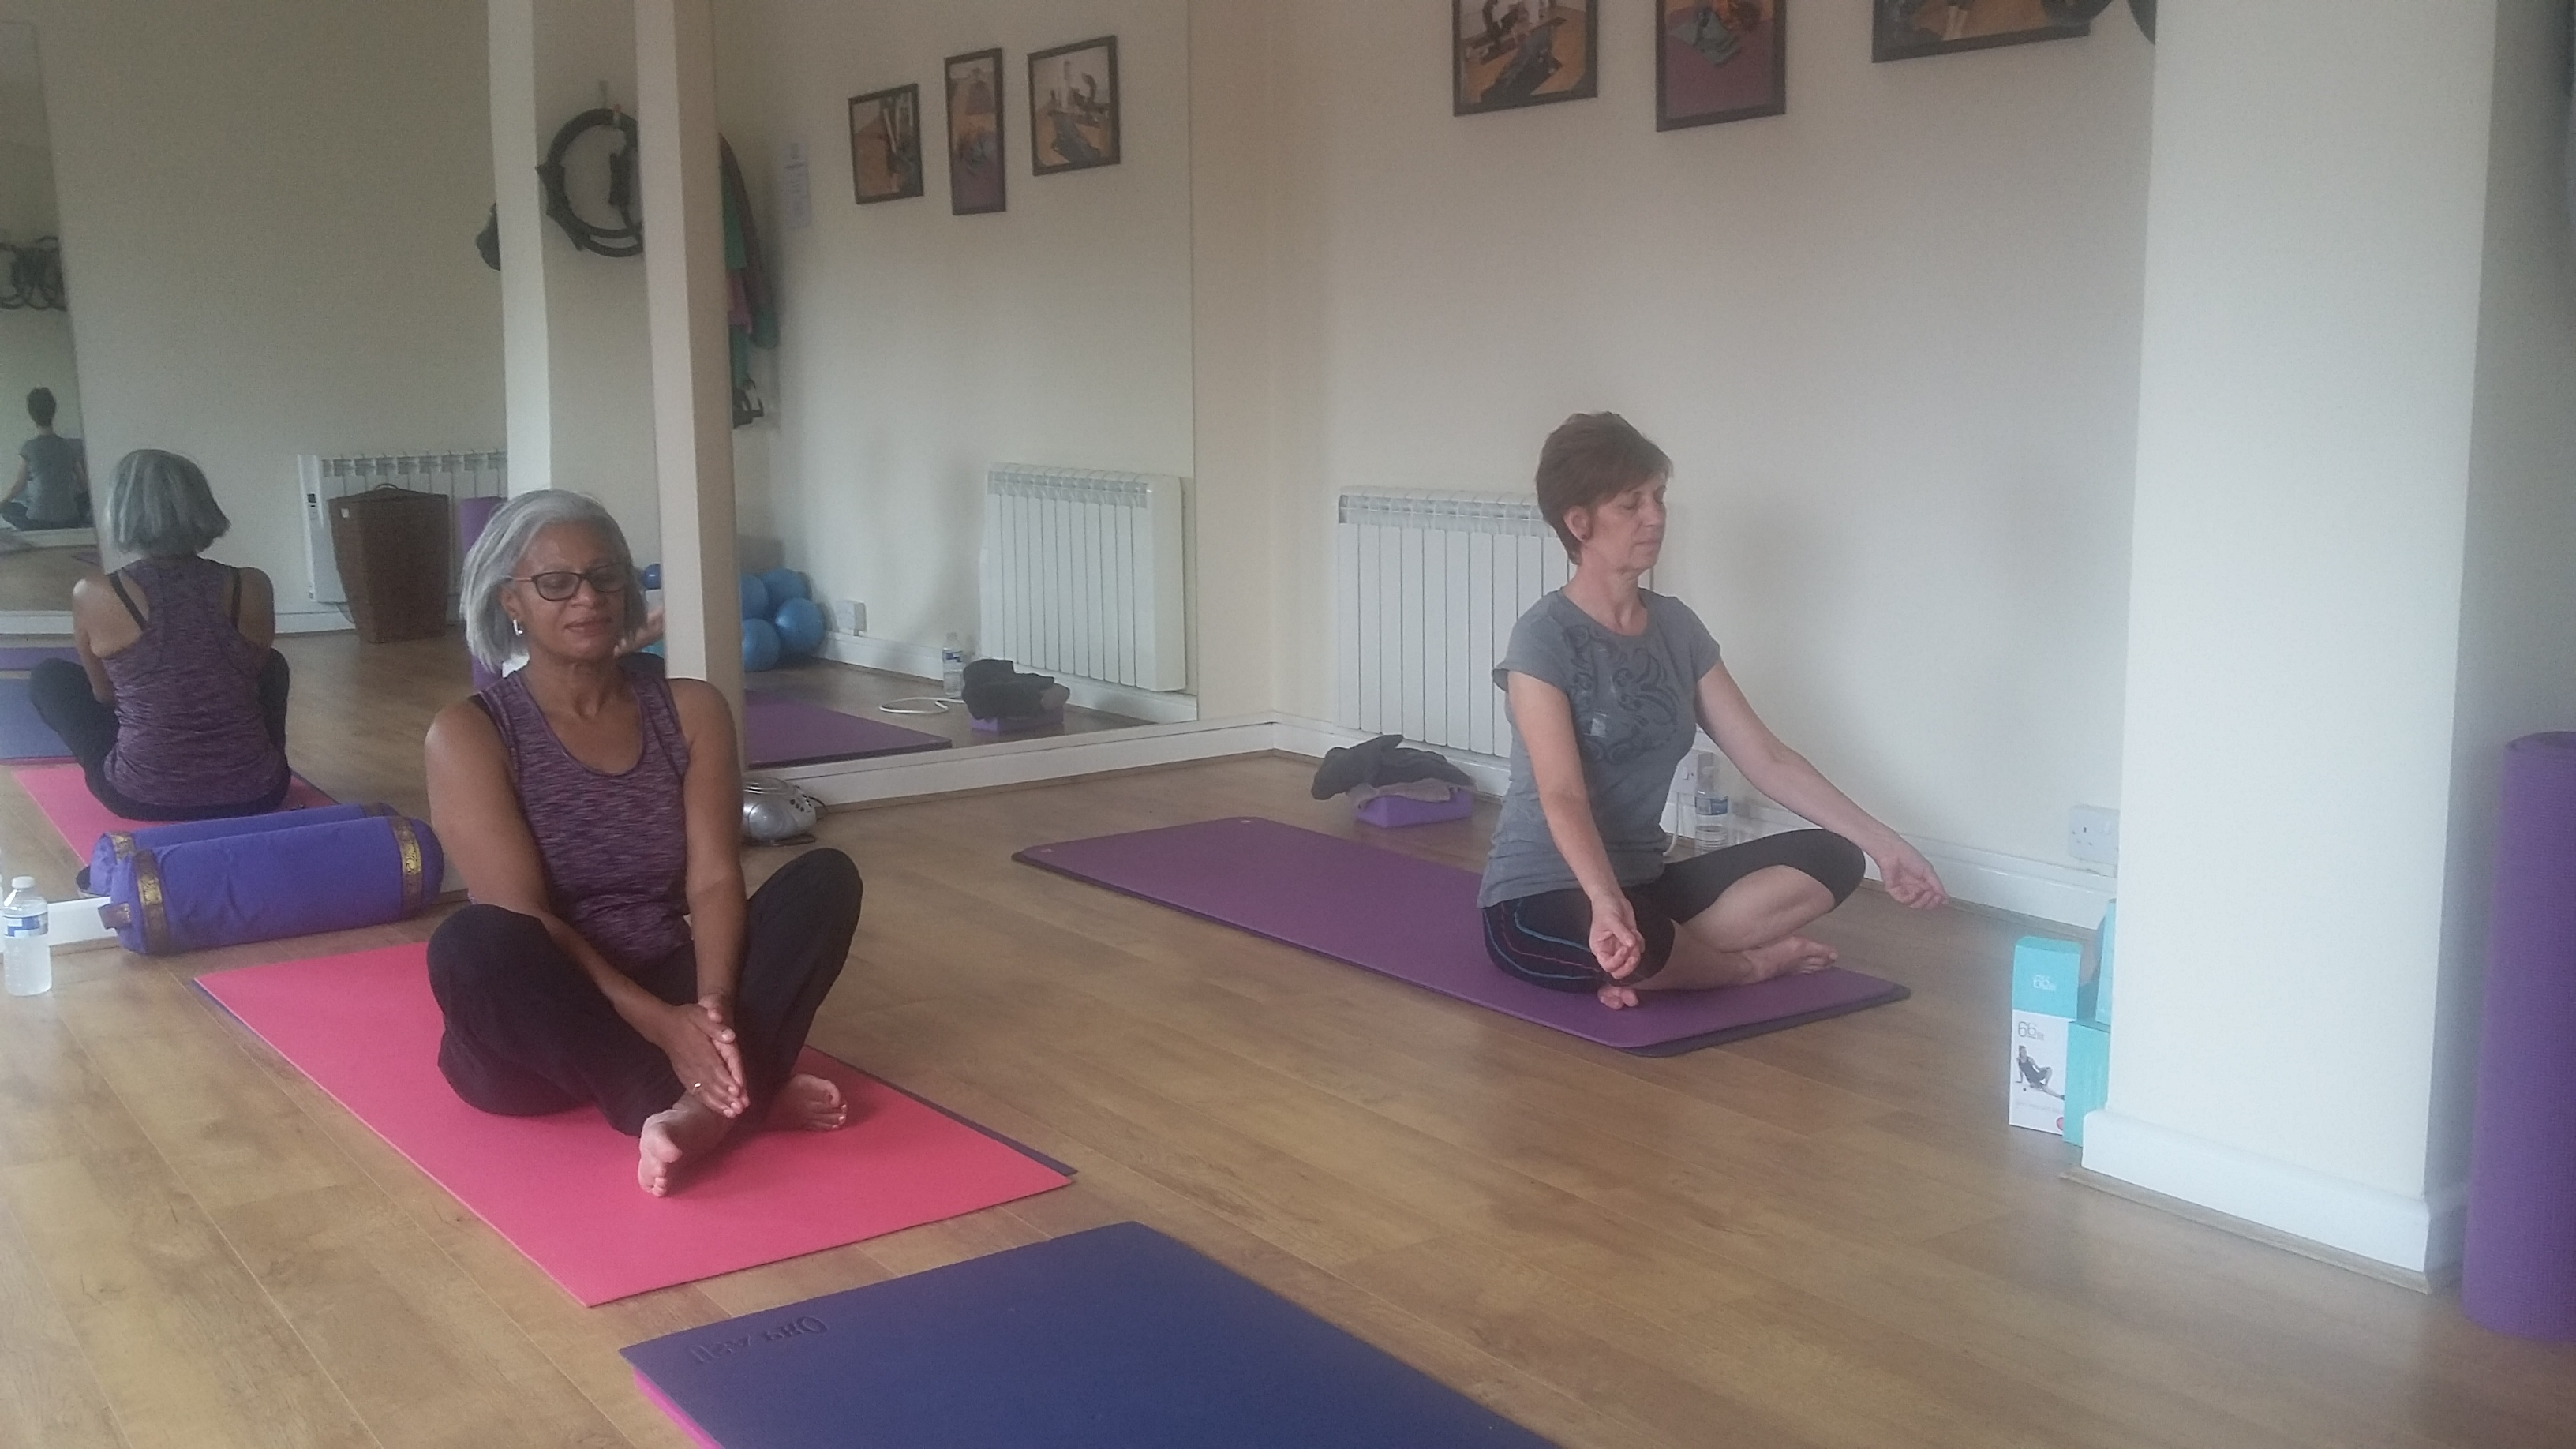 Yoga - meditation phase in our studio here at Elite Therapy